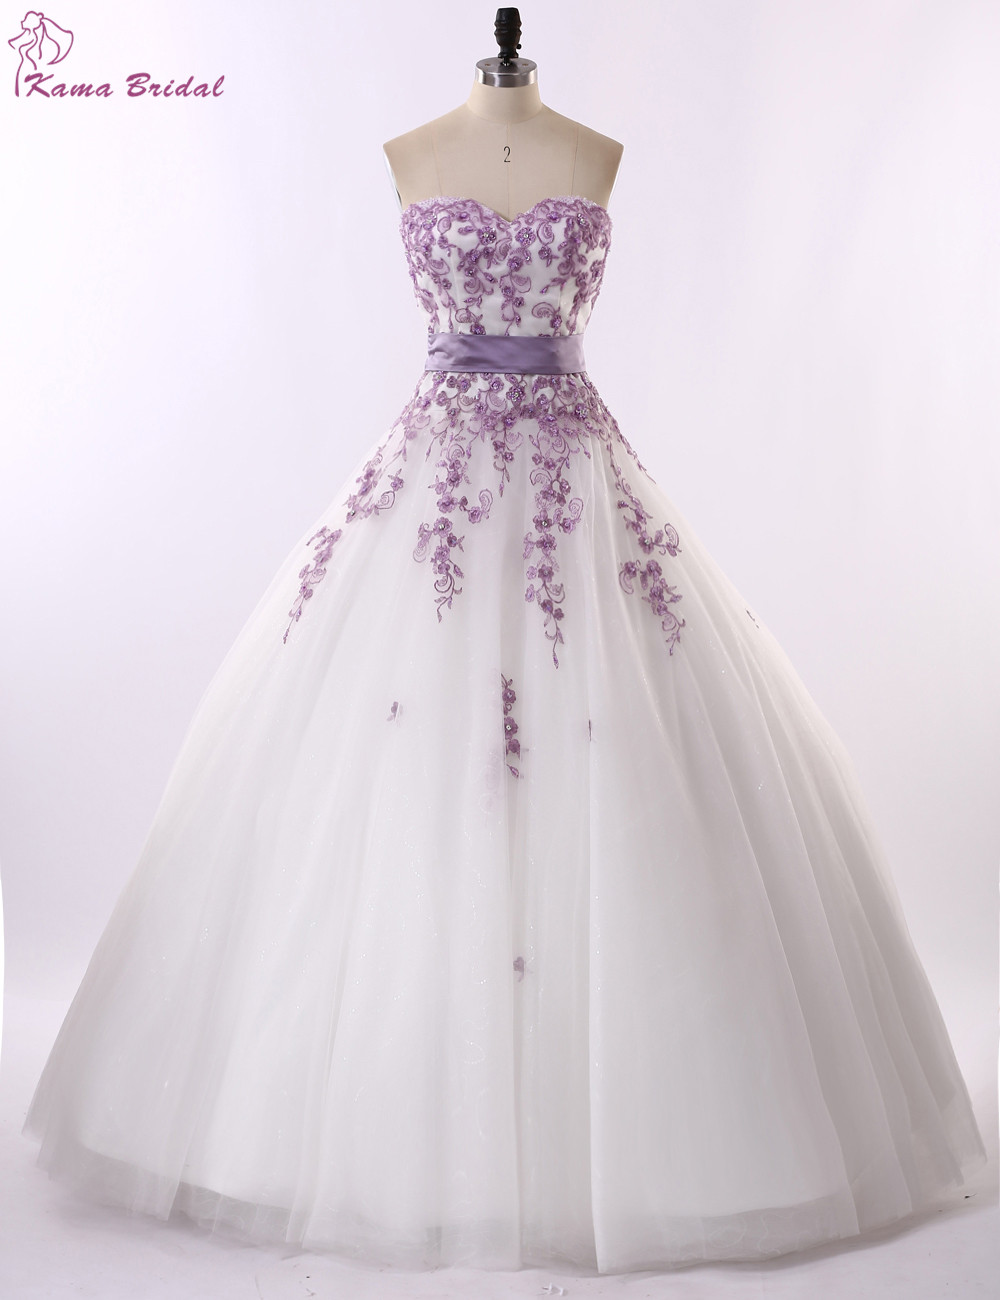 Exquisite Embroidery Lilac Wedding Dress 2016 Sweetheart Ball Gown Bridal Dresses Lace Up With Bow Vestido De Noiva In From